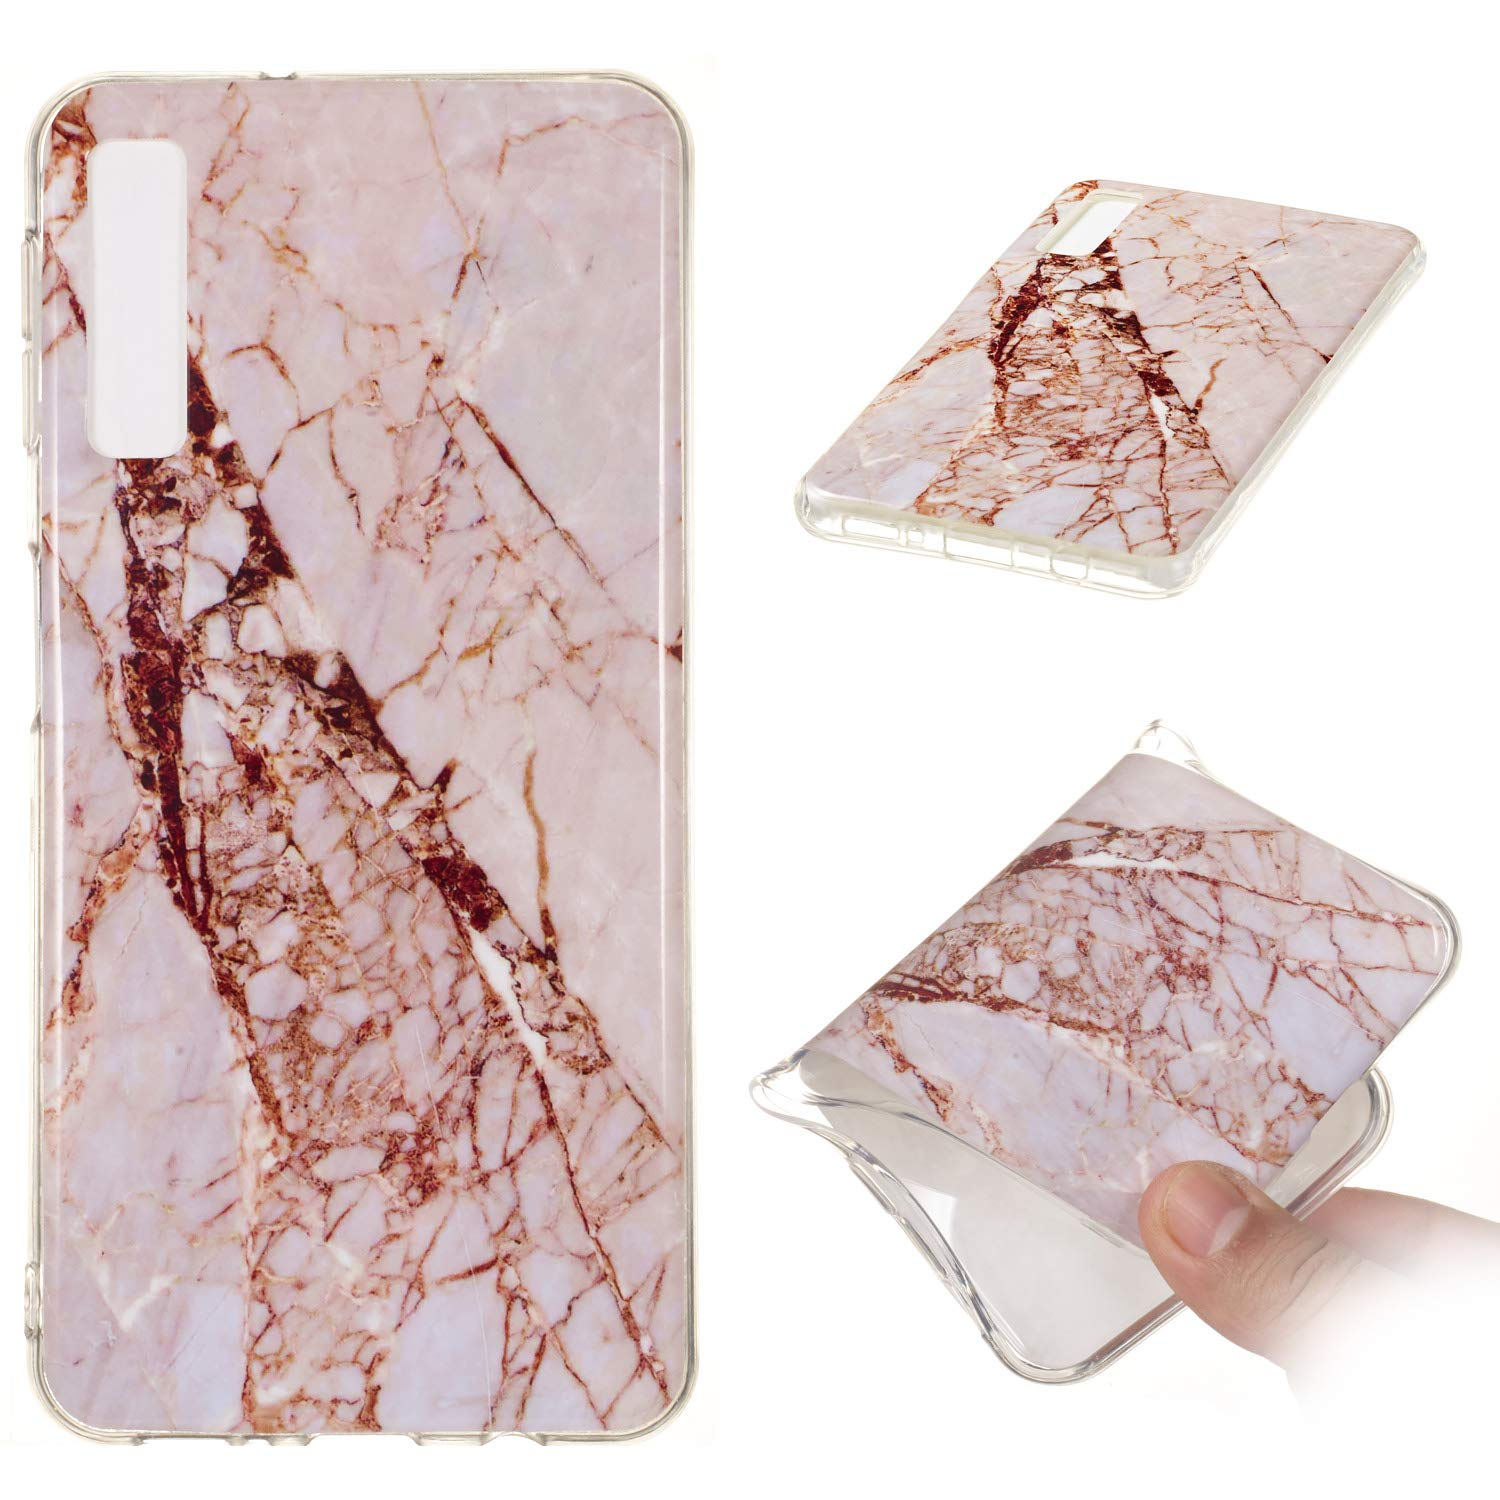 for Samsung Galaxy A7 2018 (A750) Marble Case with Screen Protector,Unique Pattern Design Skin Ultra Thin Slim Fit Soft Gel Silicone Case,QFFUN Shockproof Anti-Scratch Protective Back Cover - White